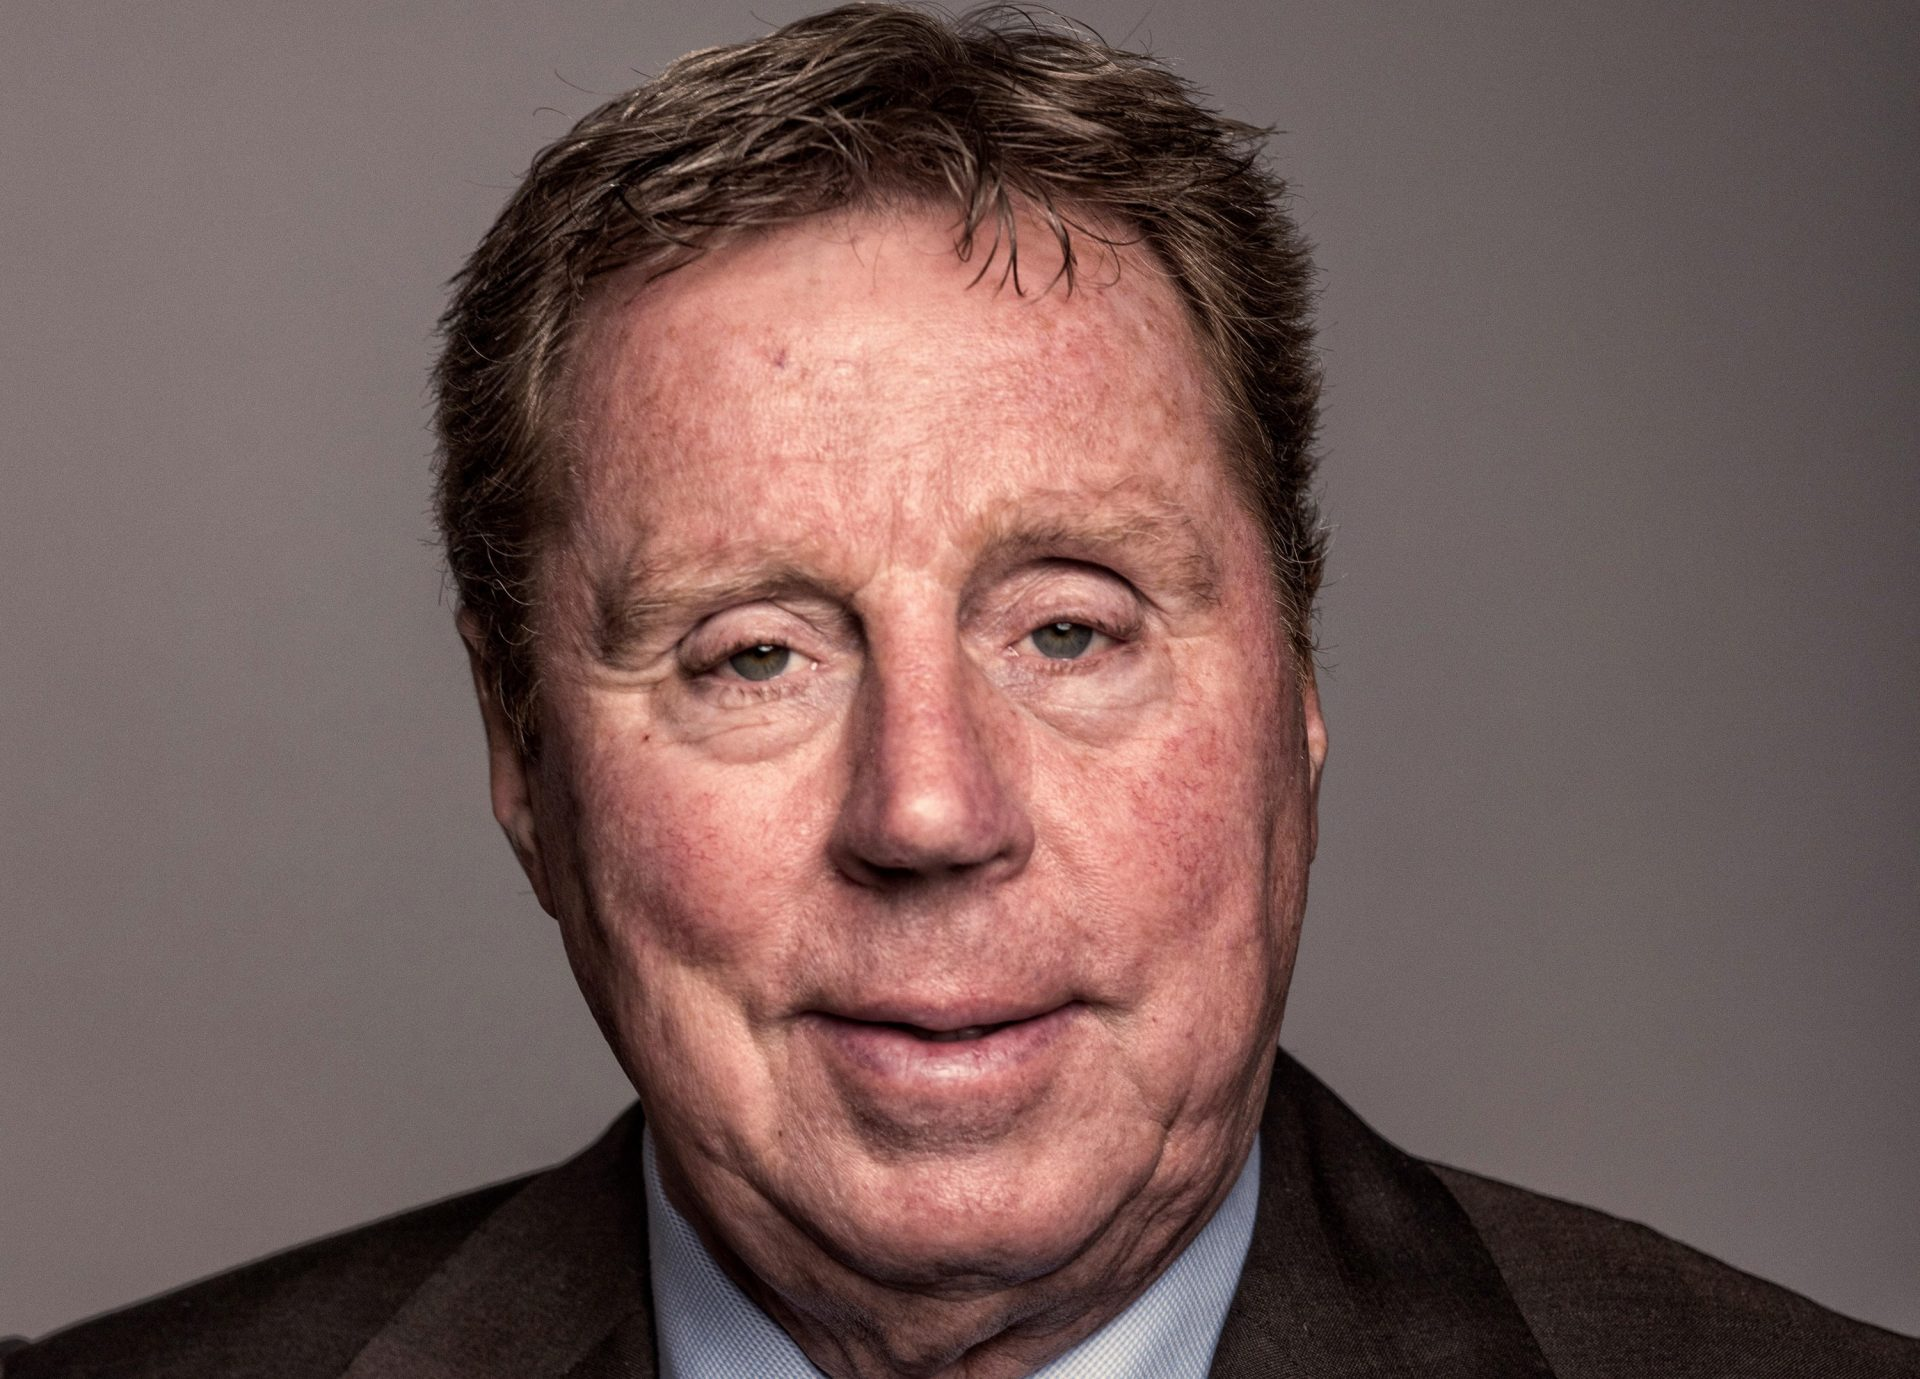 Harry Redknapp on how busy 'retirement' is different to how he imagined.